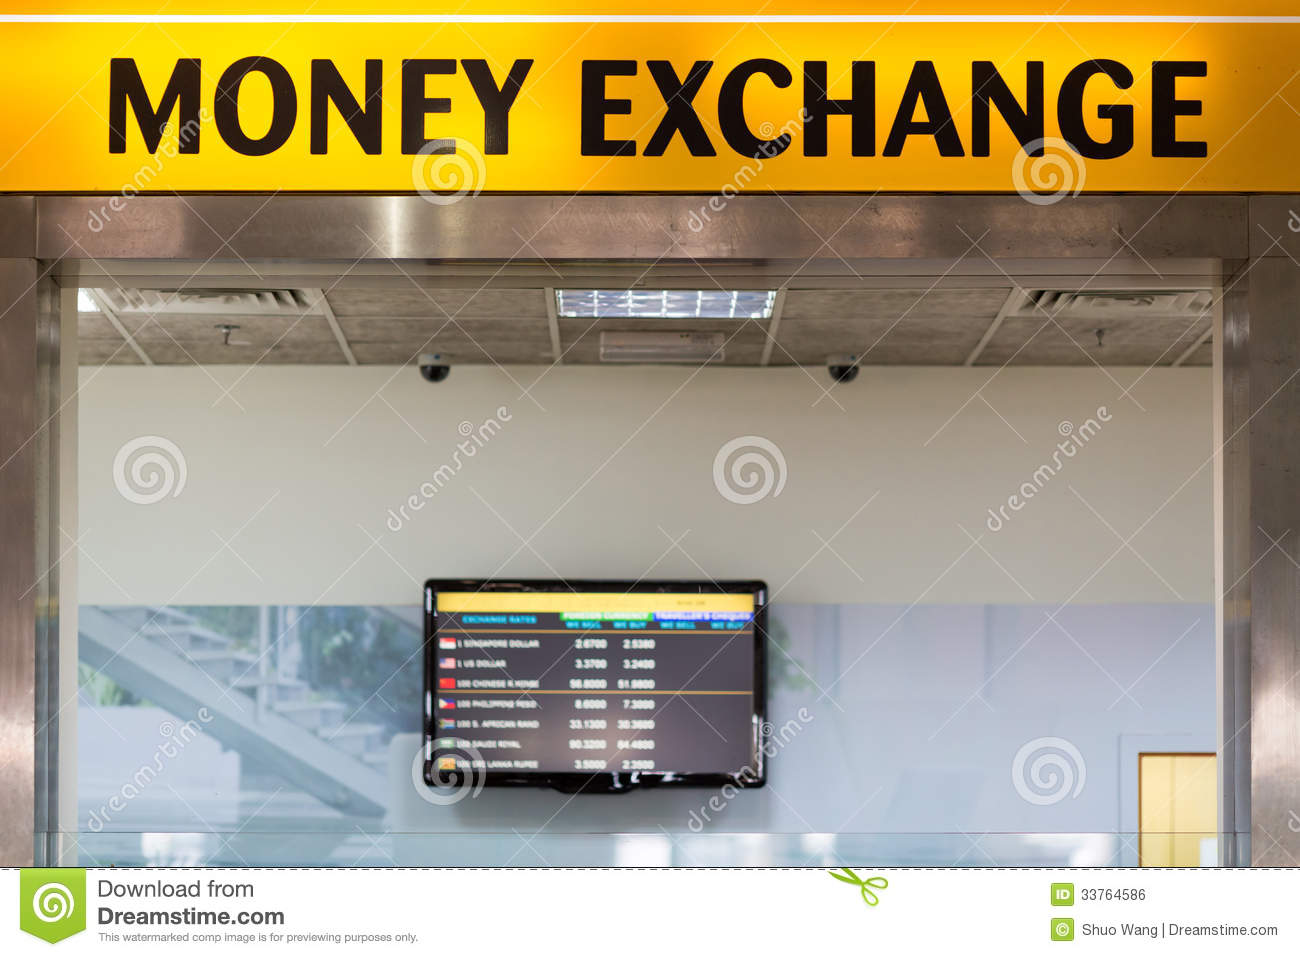 Make money currency exchange